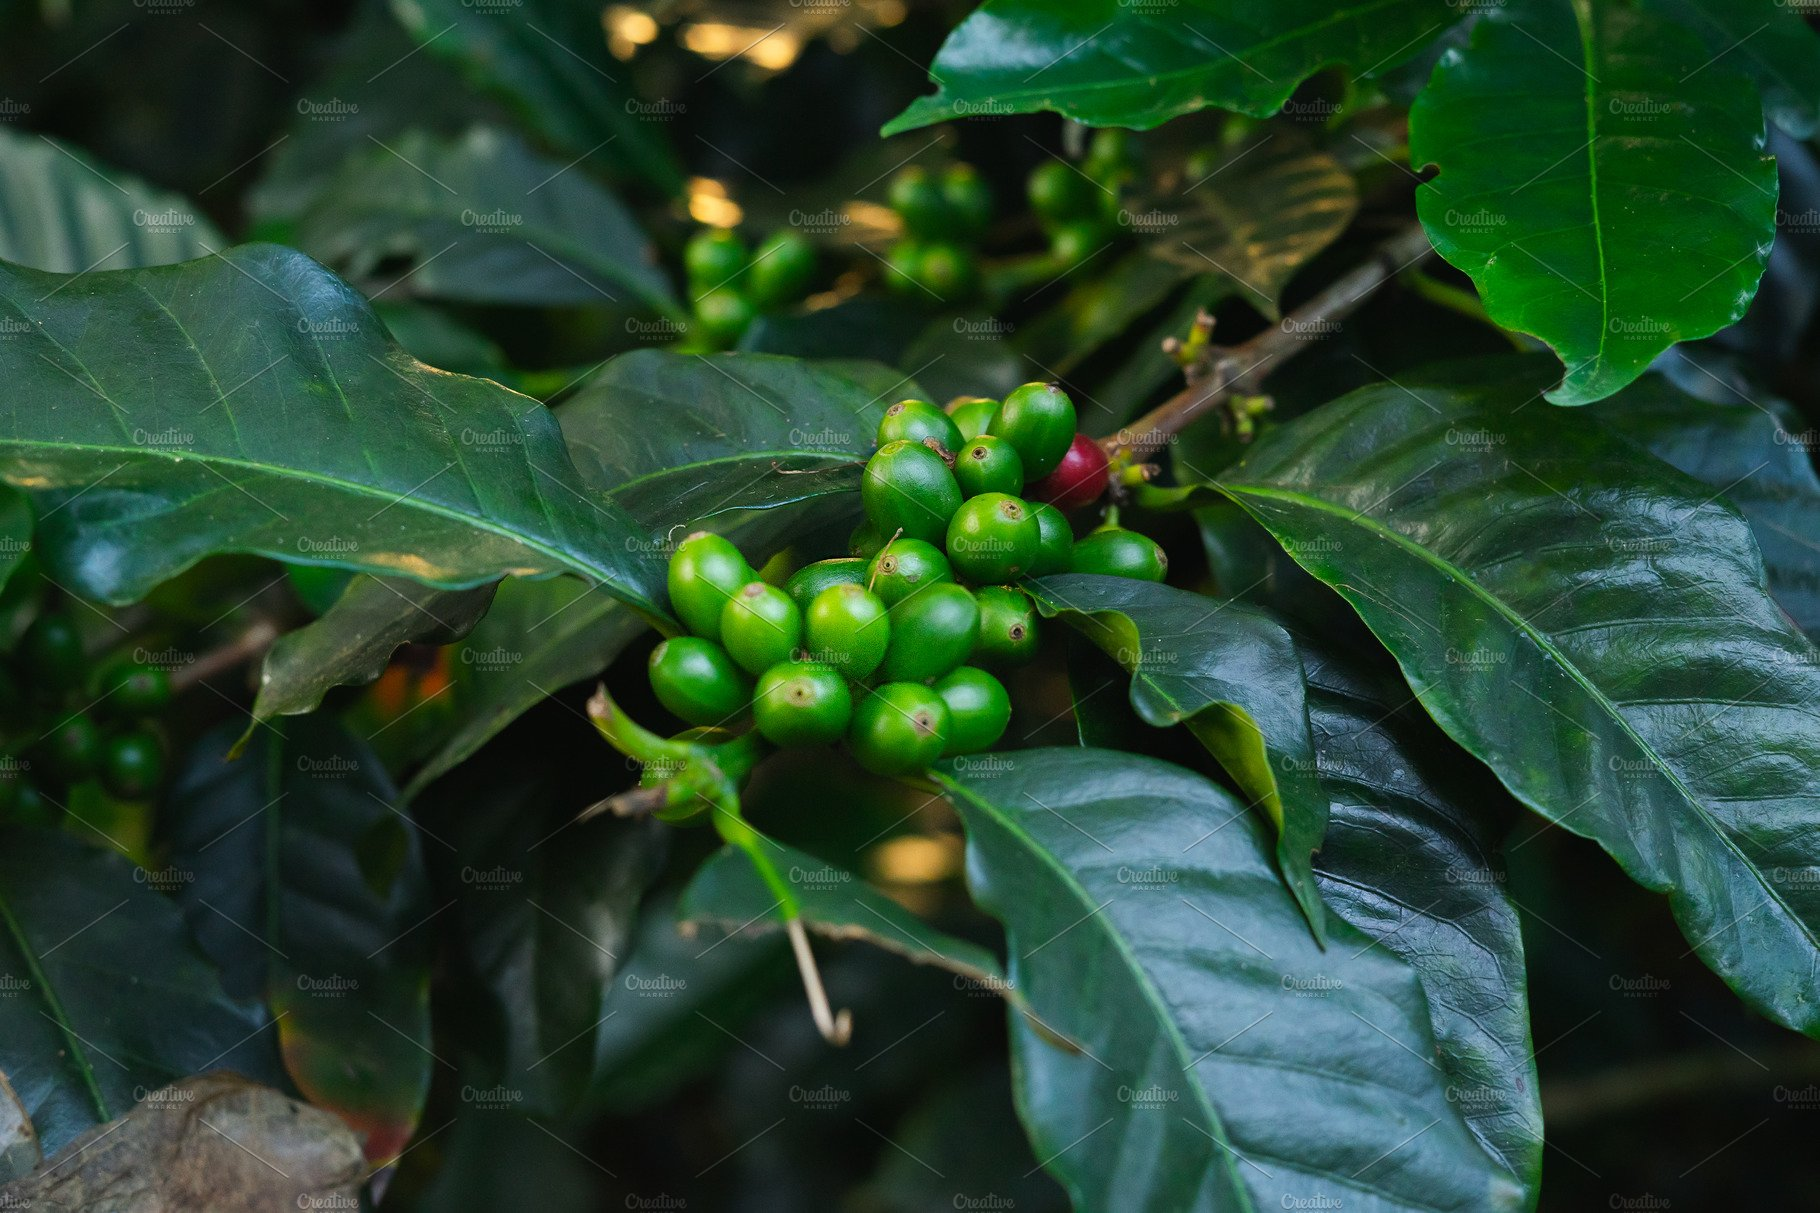 Coffee Plant With Green Fruits High Quality Nature Stock Photos